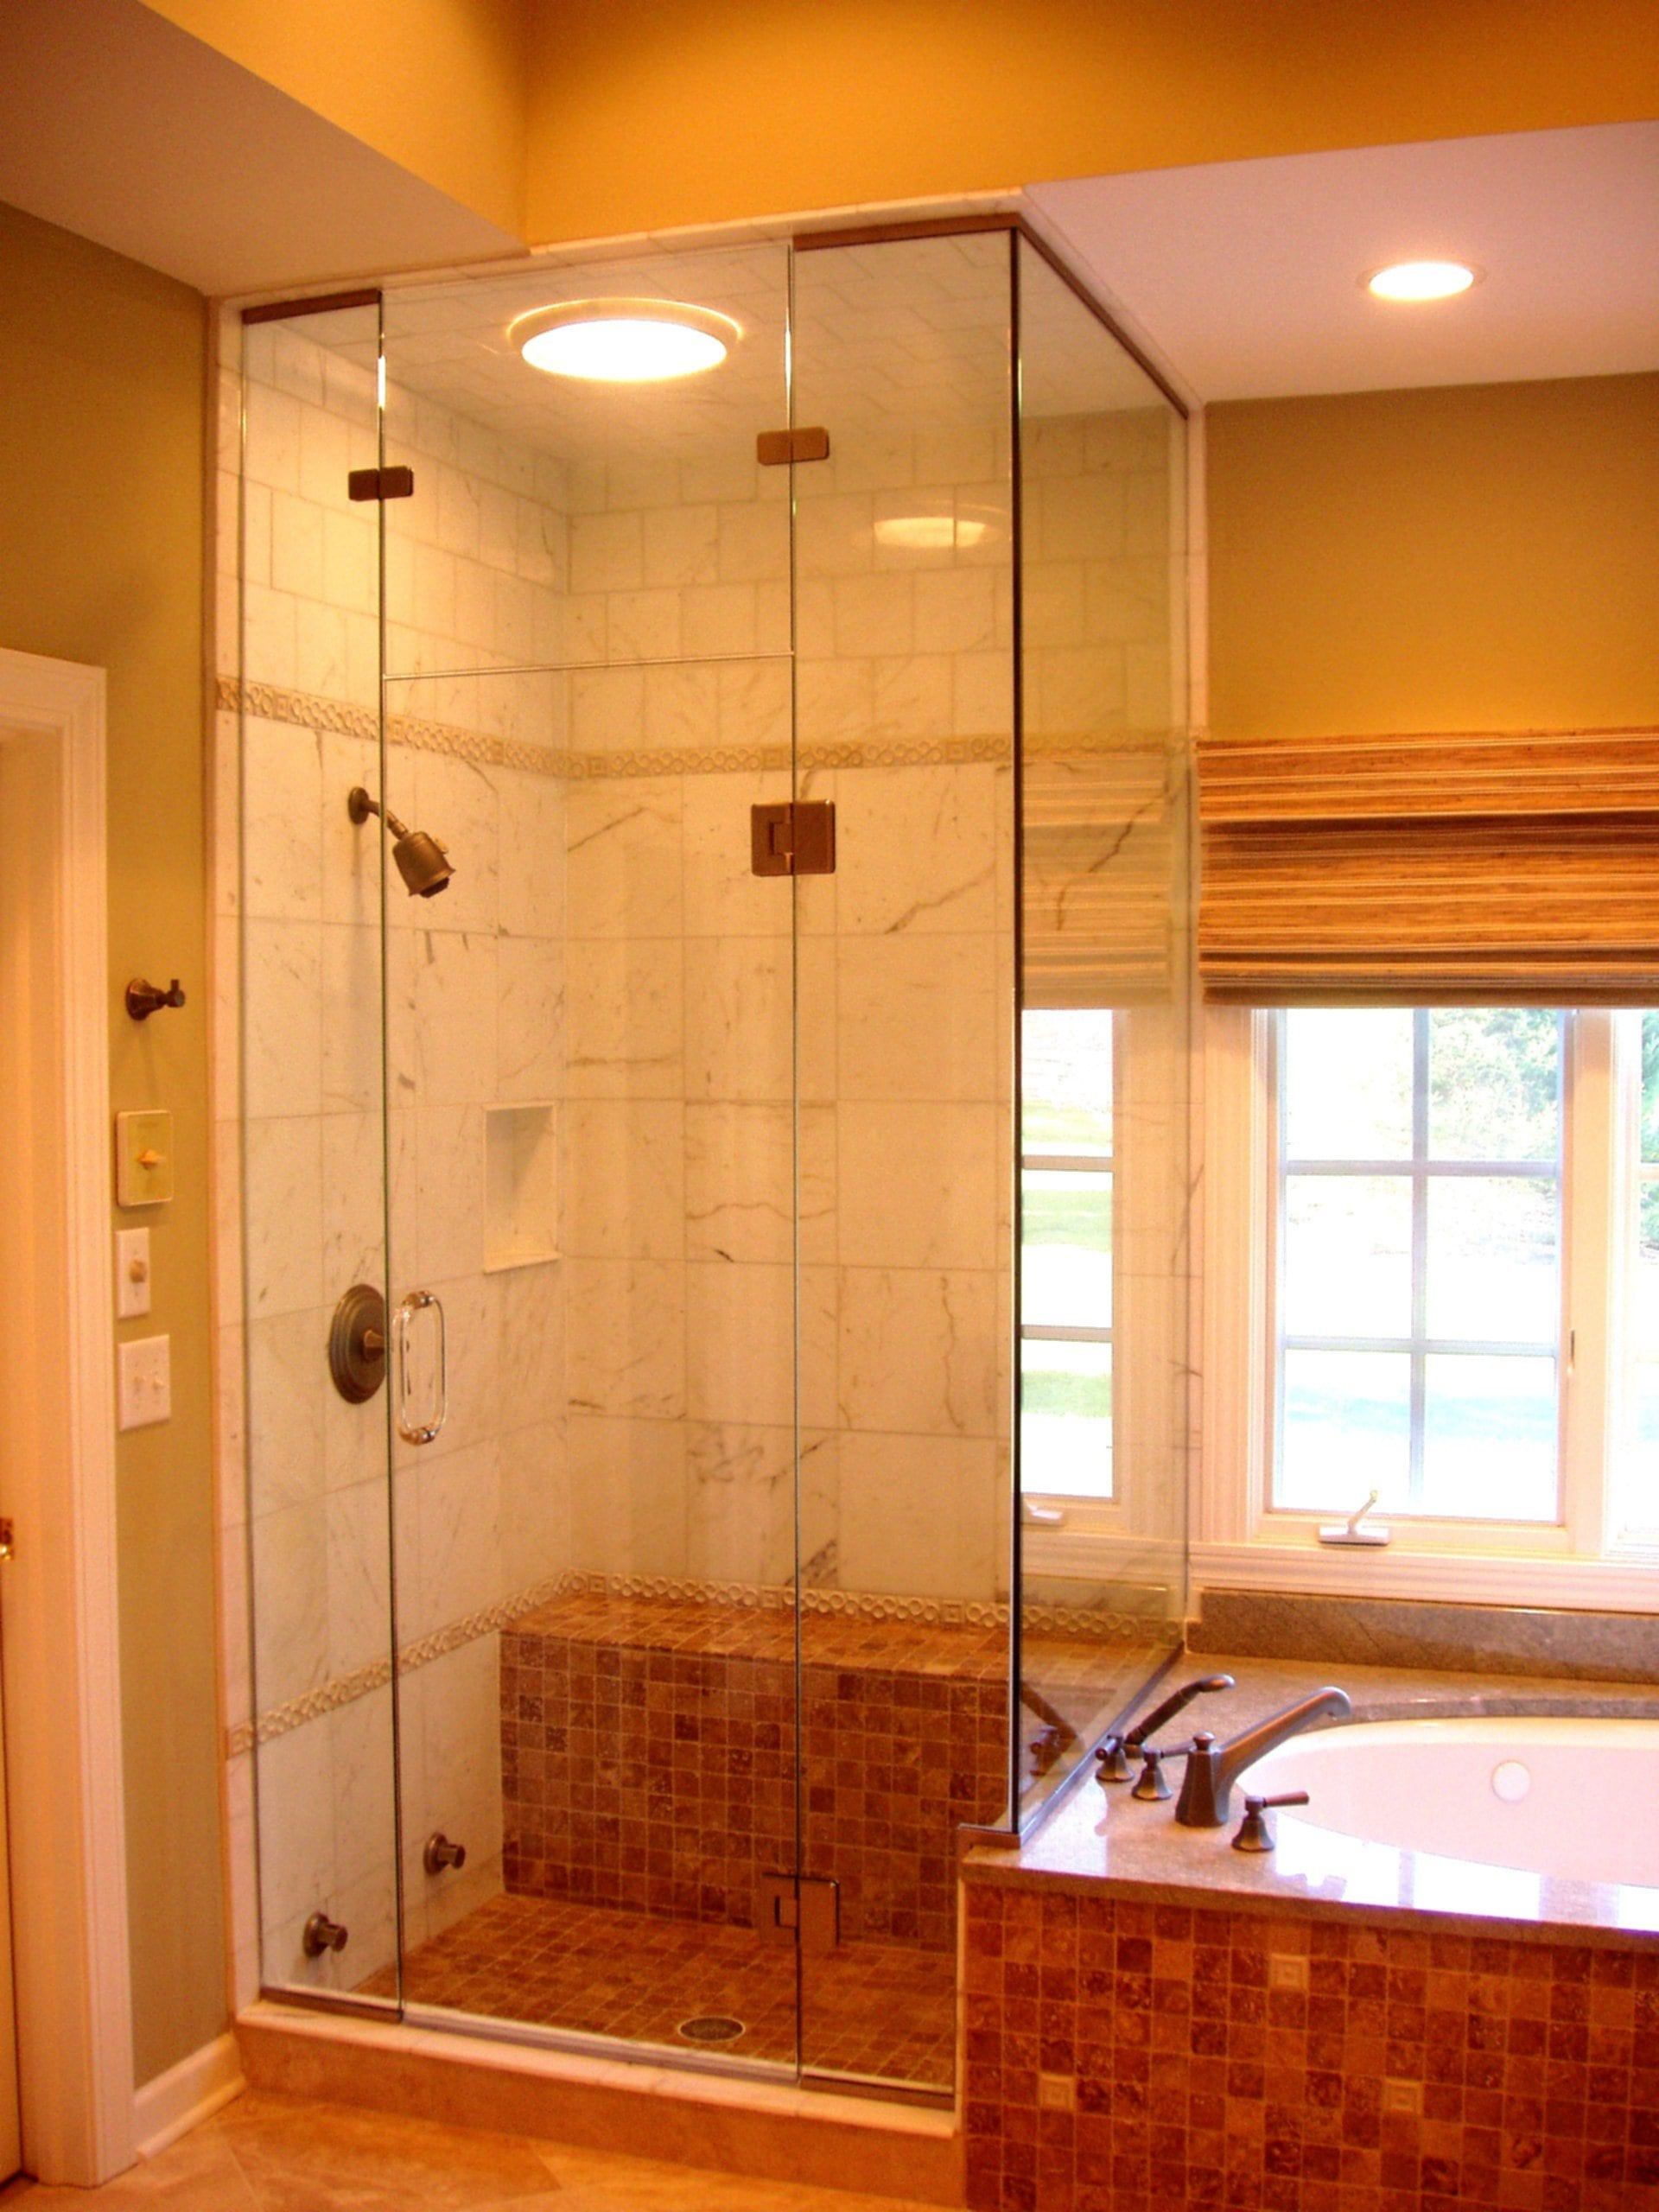 Shower Stalls For Small Bathrooms - Loccie Better Homes ...